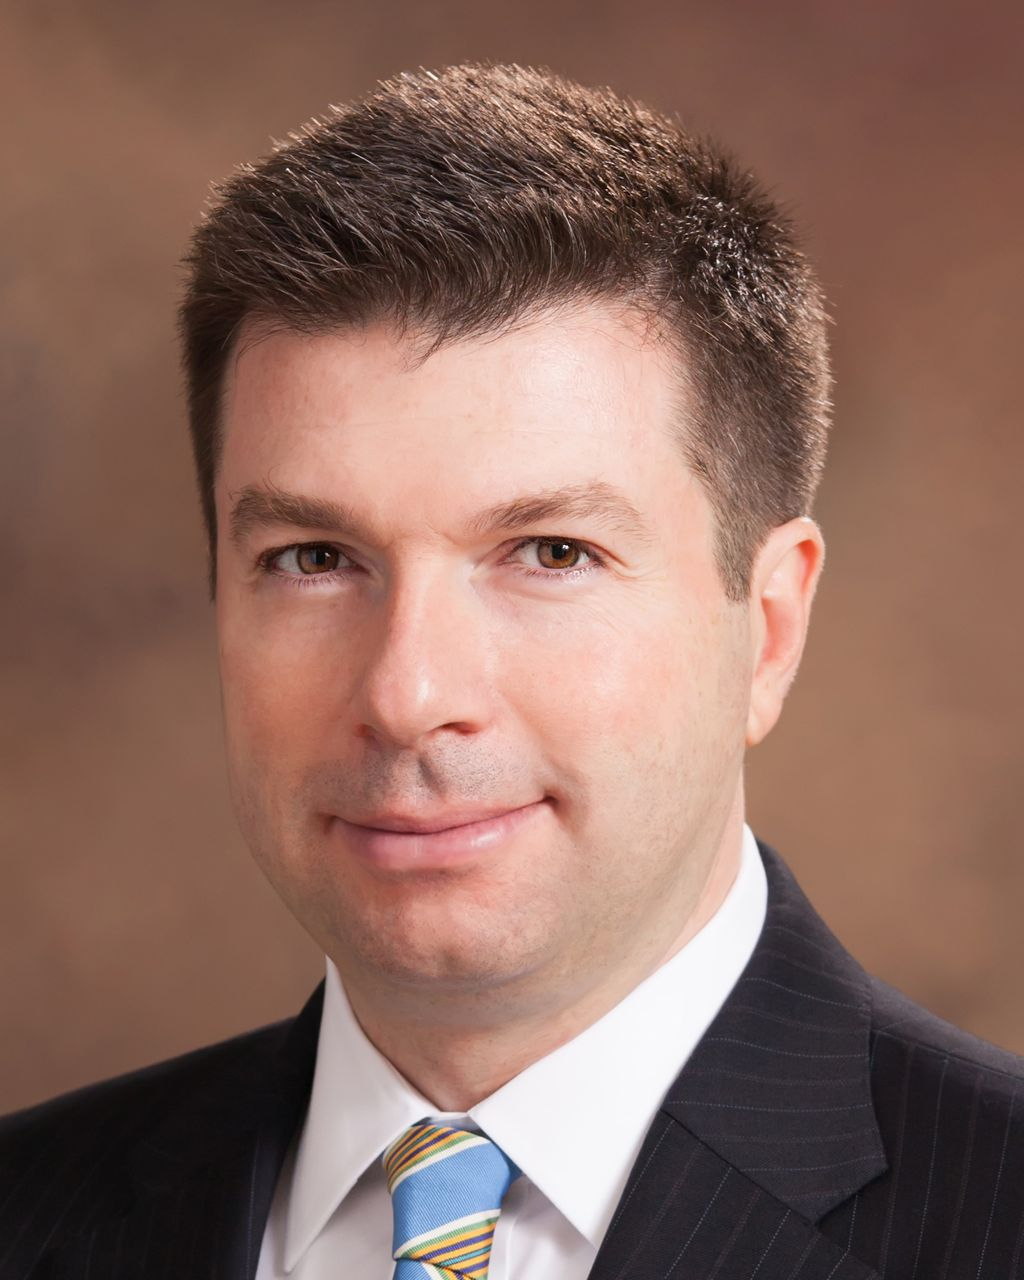 Patrick Cote, financial advisor Lexington MA